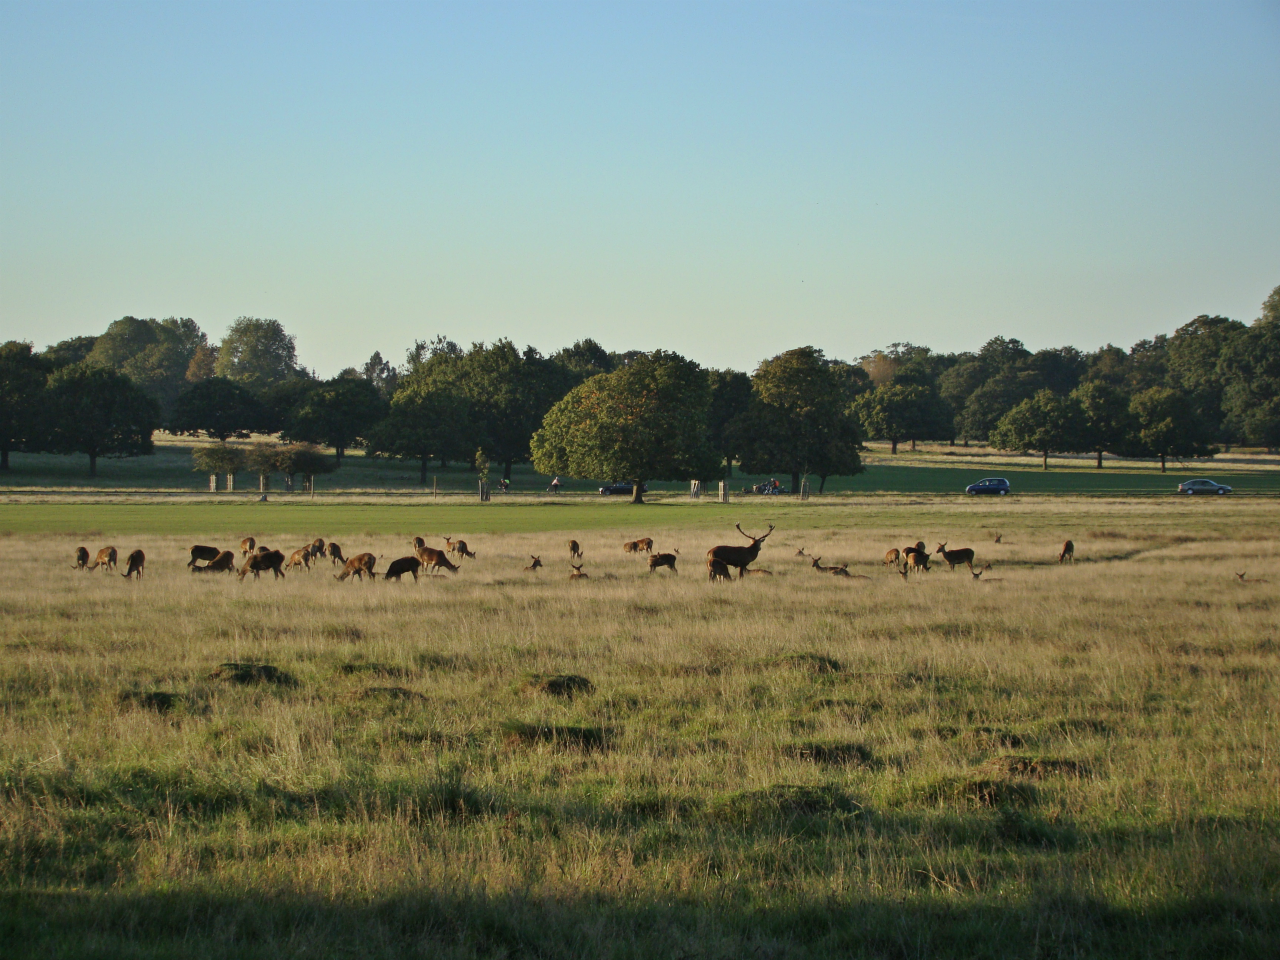 A red deer stag with a harem in Richmond Park, London, 30 September 2015